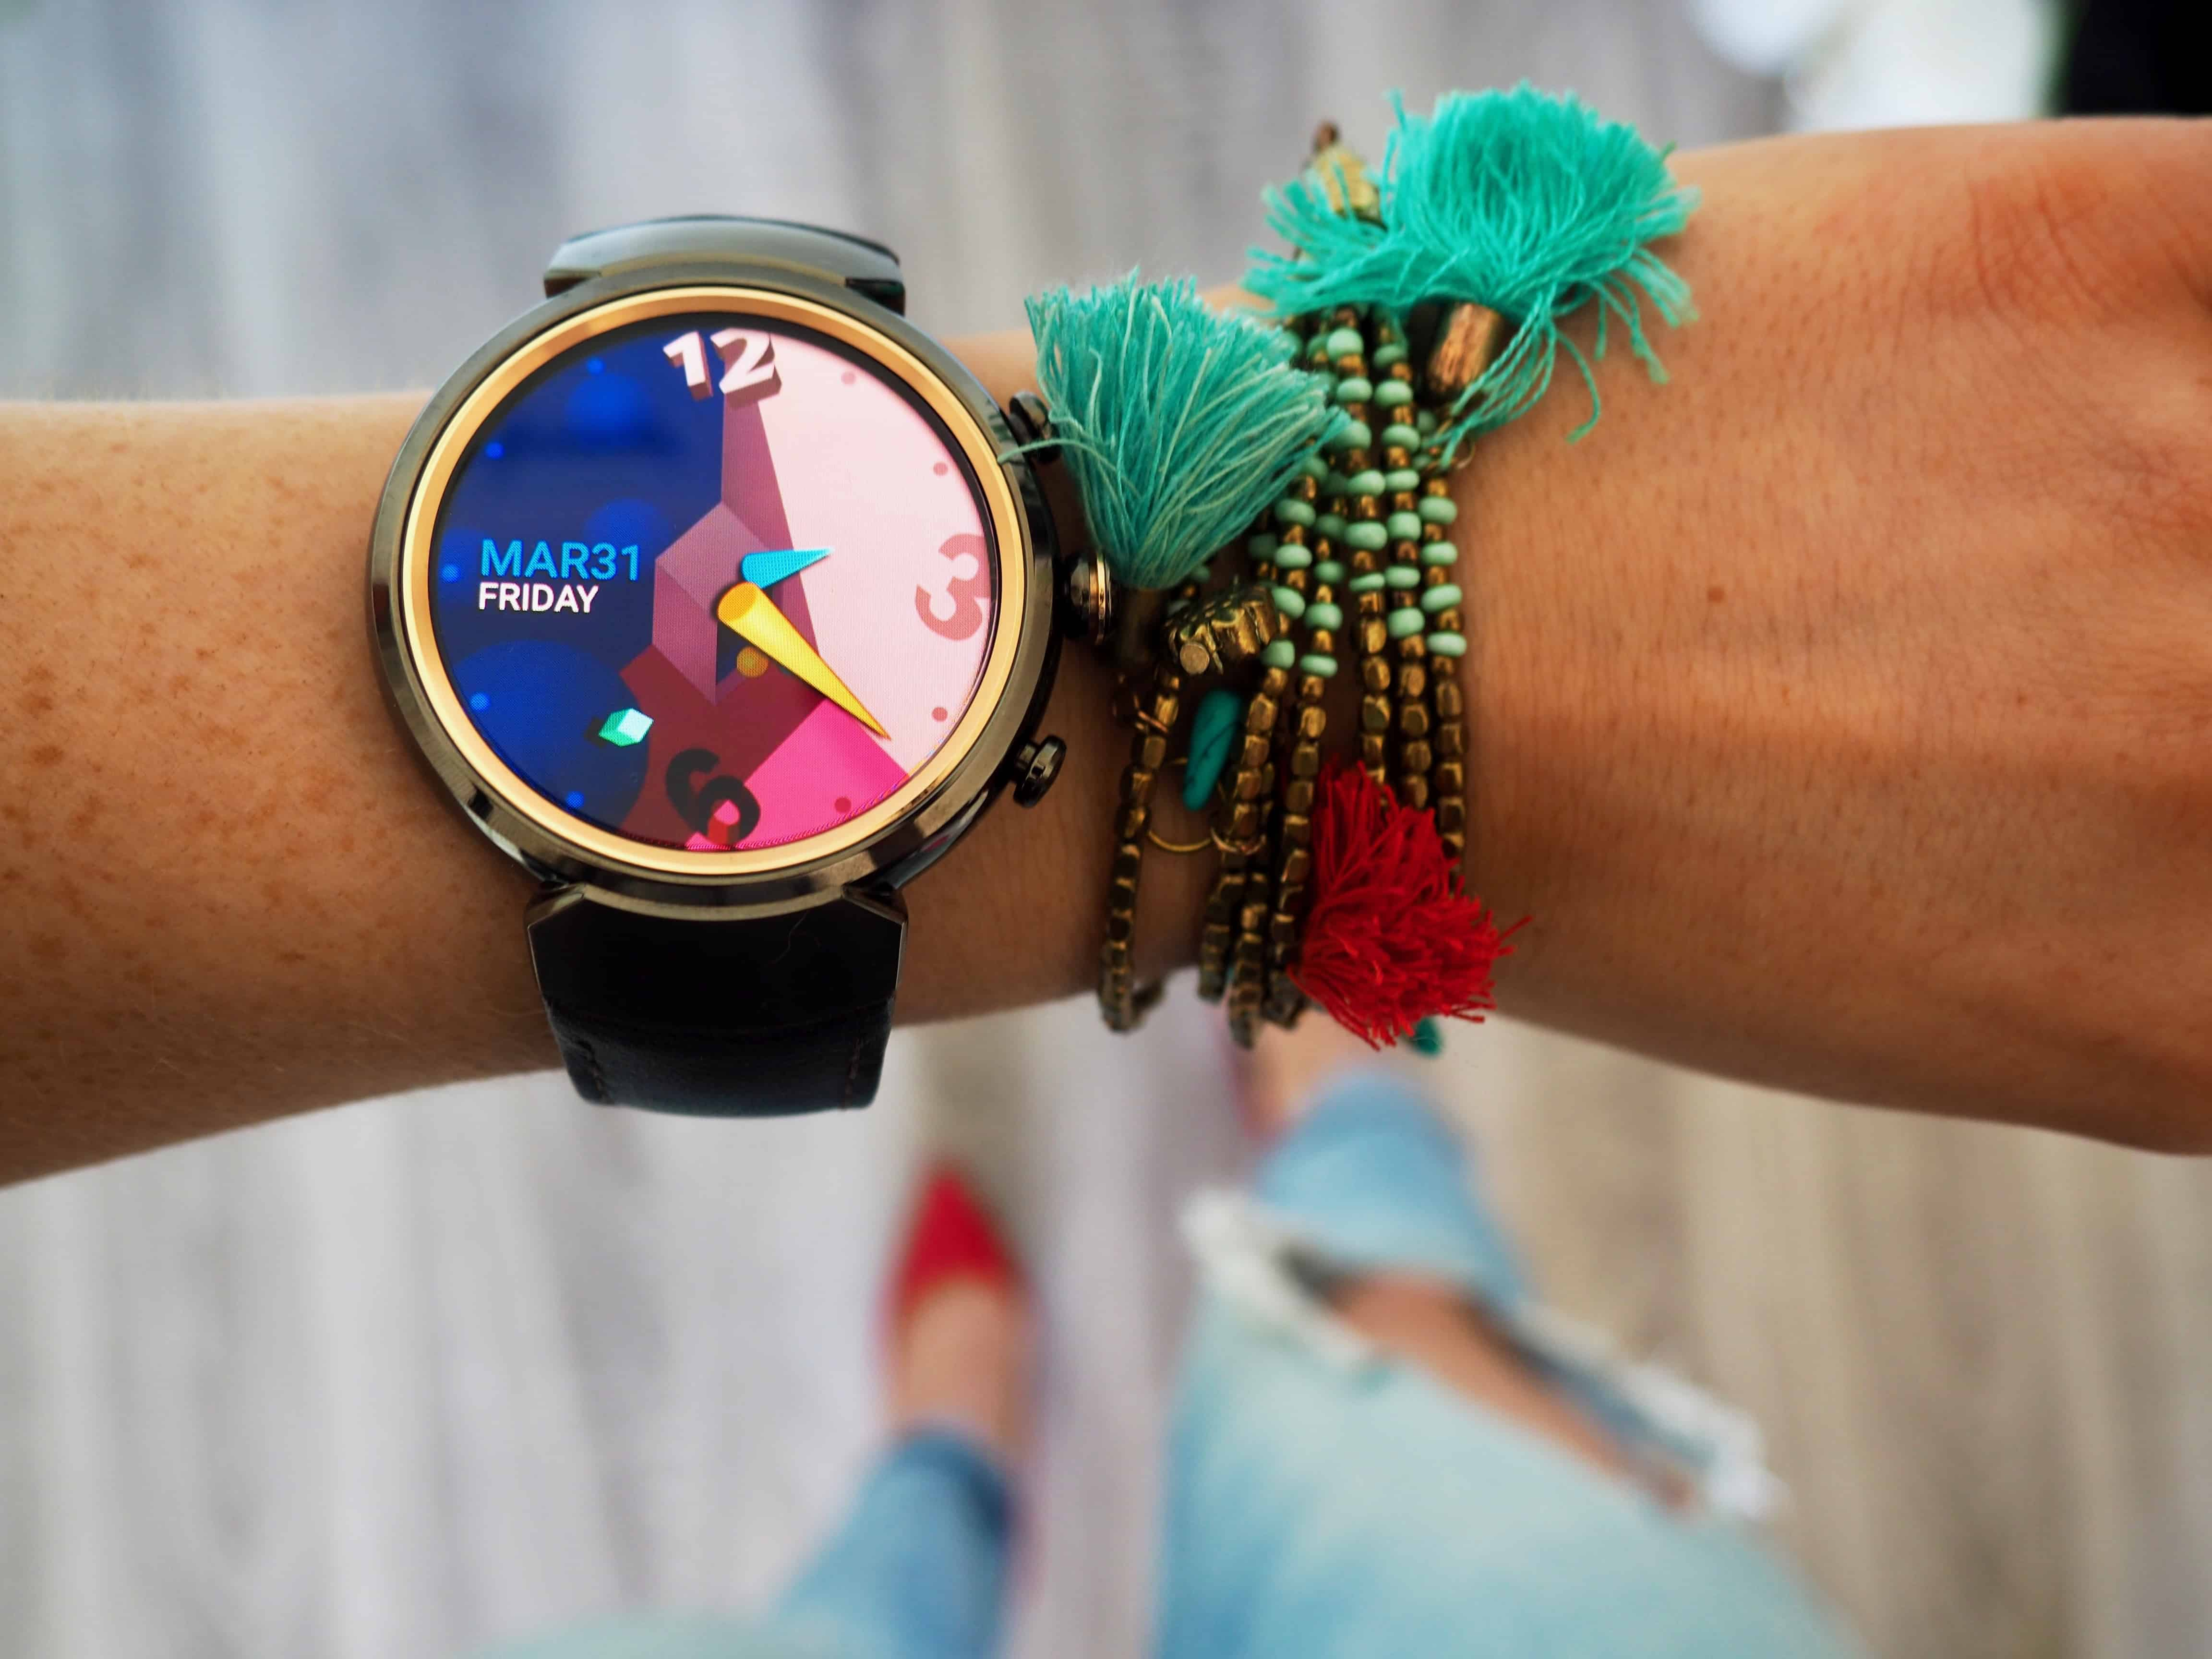 Review: 3 Zenwatch is Smart and Stylish Watch